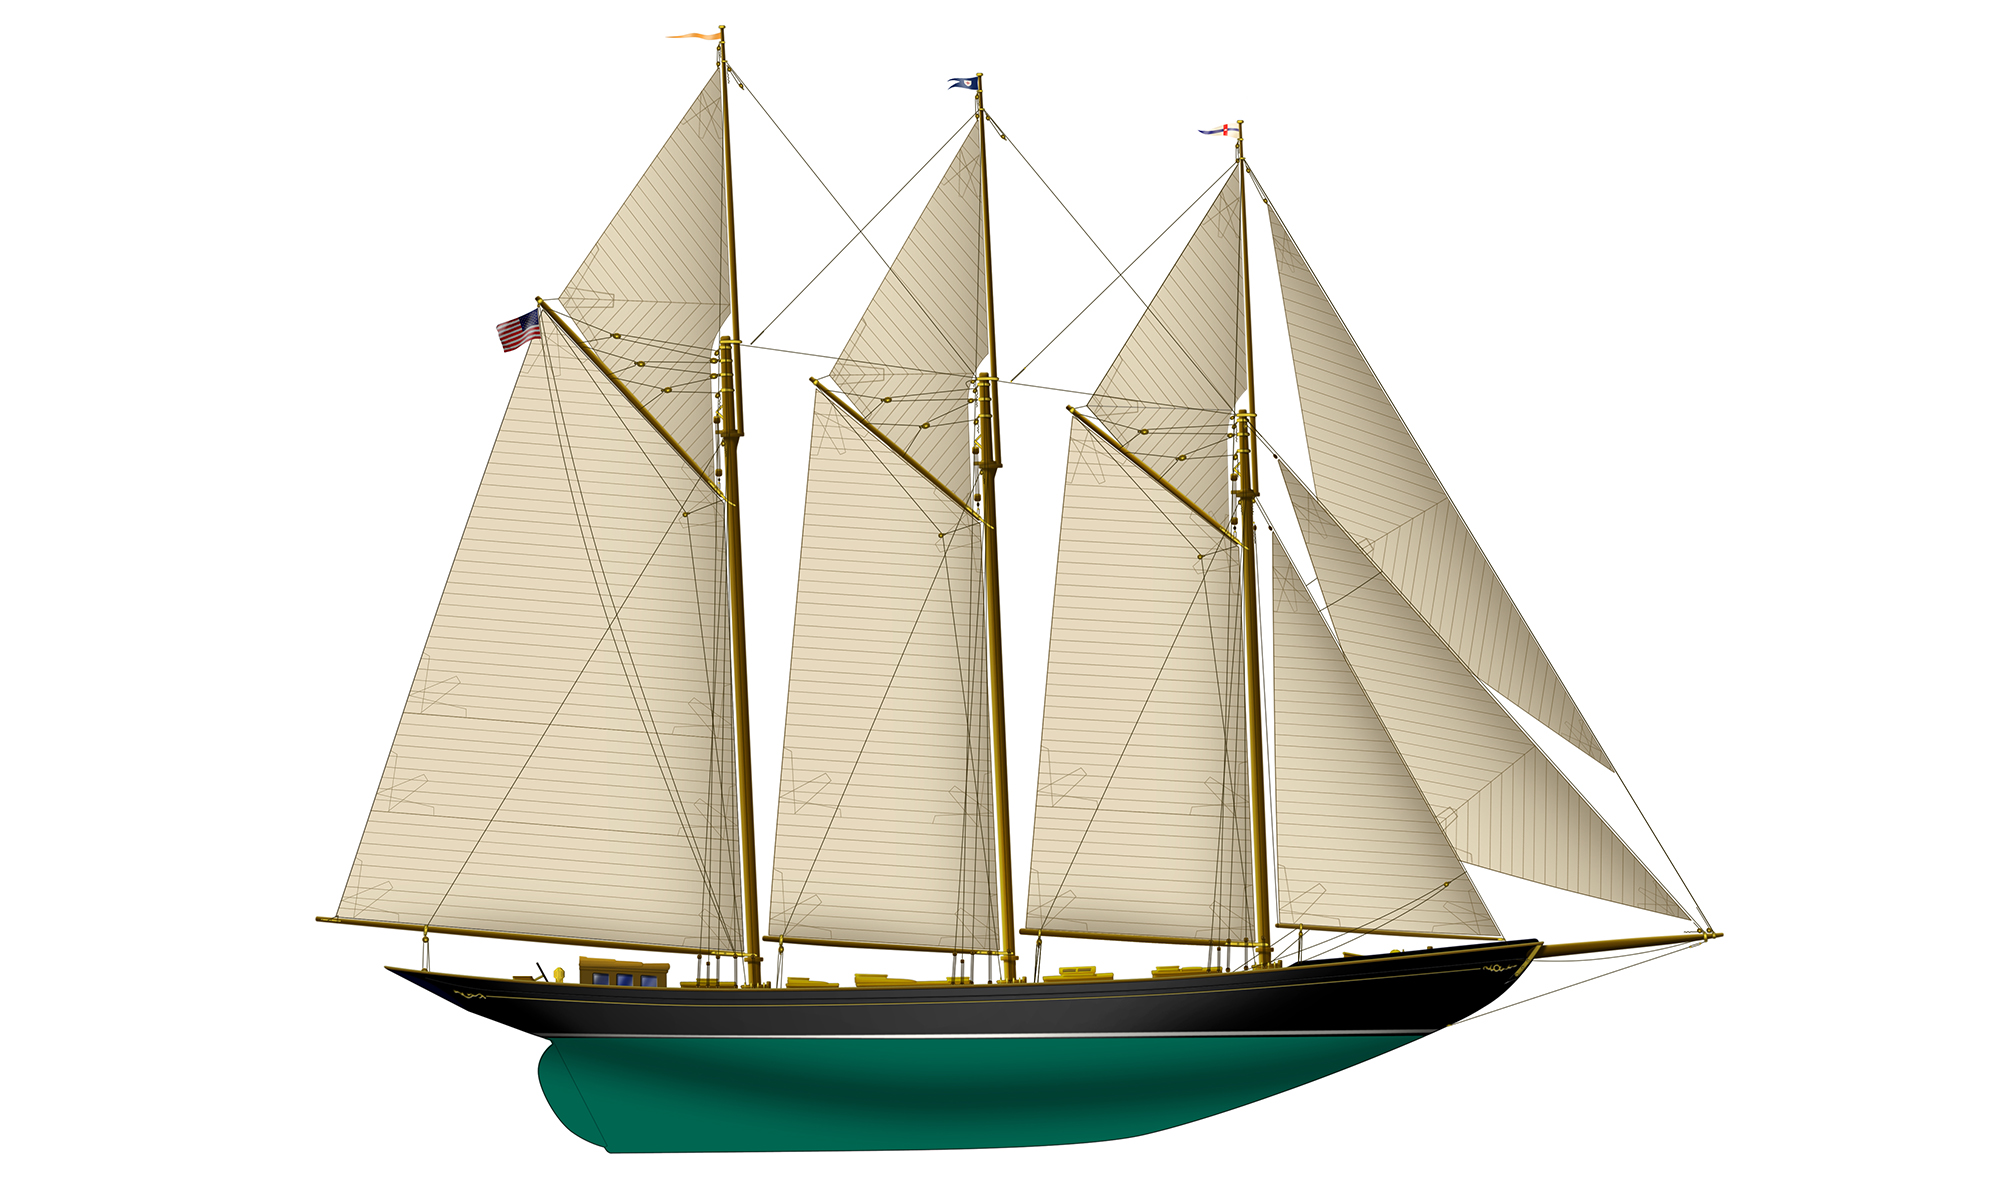 Photoshop_Schooner_Classic_Yacht_Rendering_Yacht_Creation